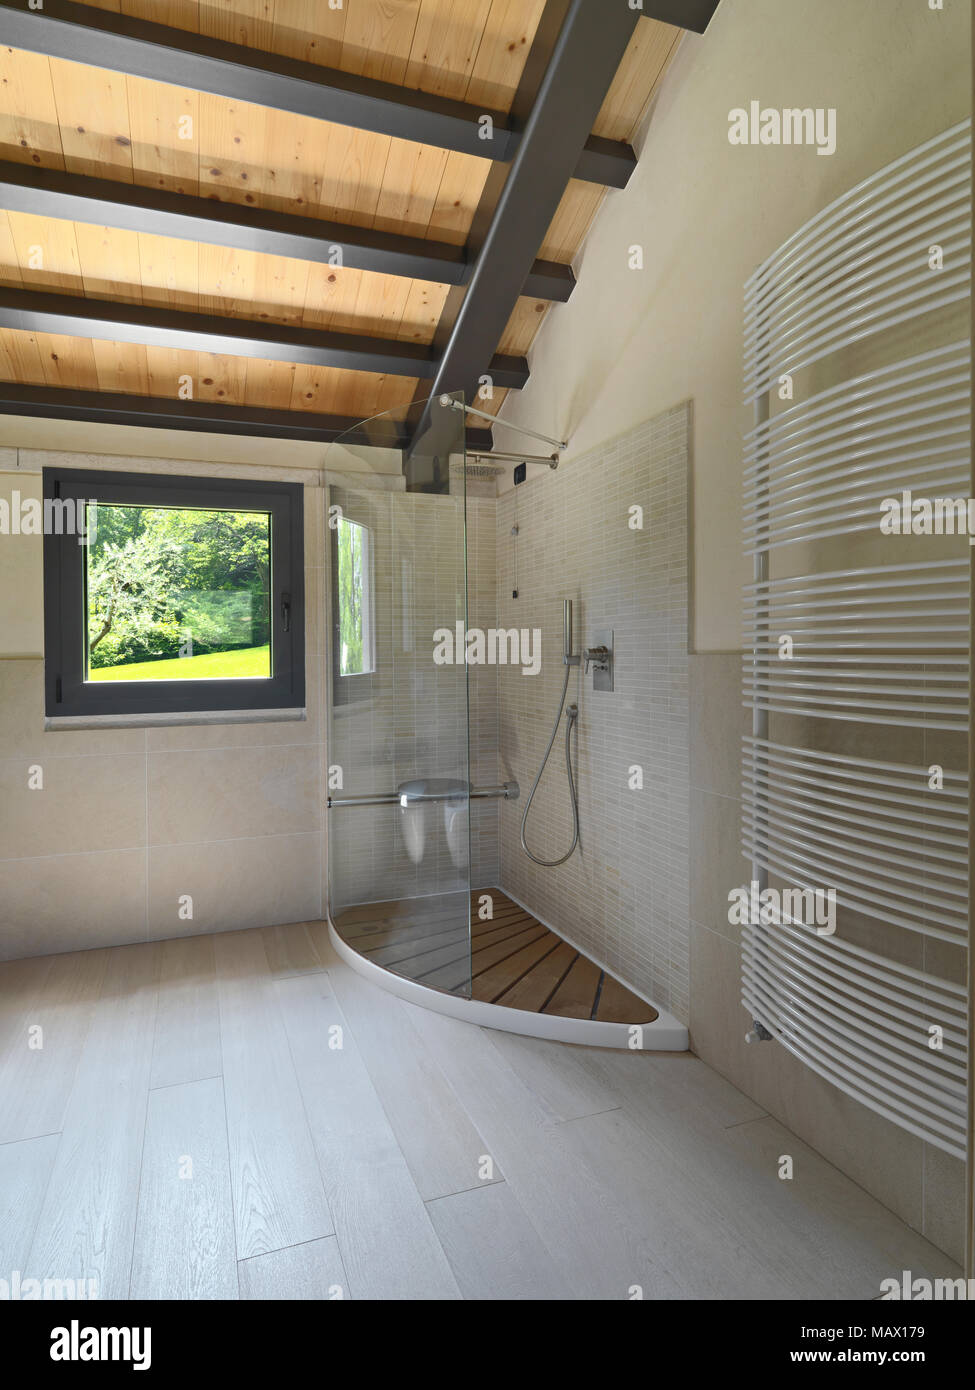 interiors shots of a modern bathroom, in the foreground round counter top washbasin on hte marble top in background the bidet and the toilet bowl the  - Stock Image